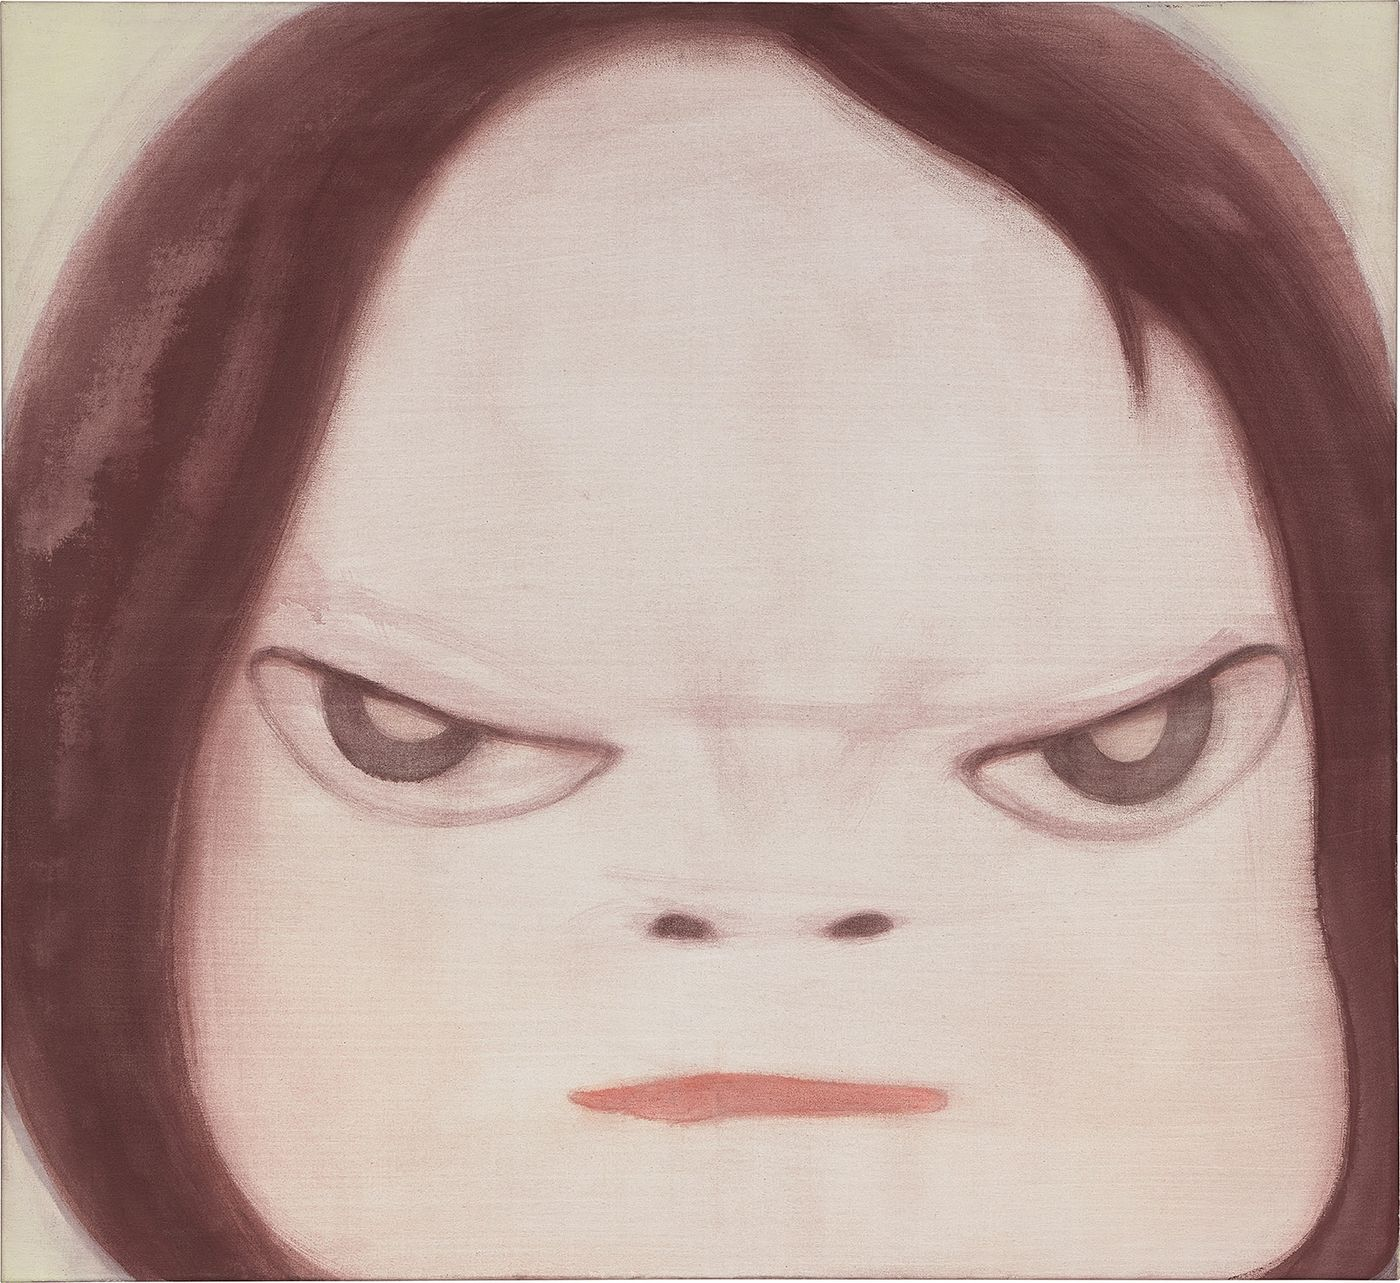 Best-known for his delightful yet emotionally complex renderings of children, the Japanese Neo Pop artist has developed a unique iconography drawing from a variety of artistic traditions.